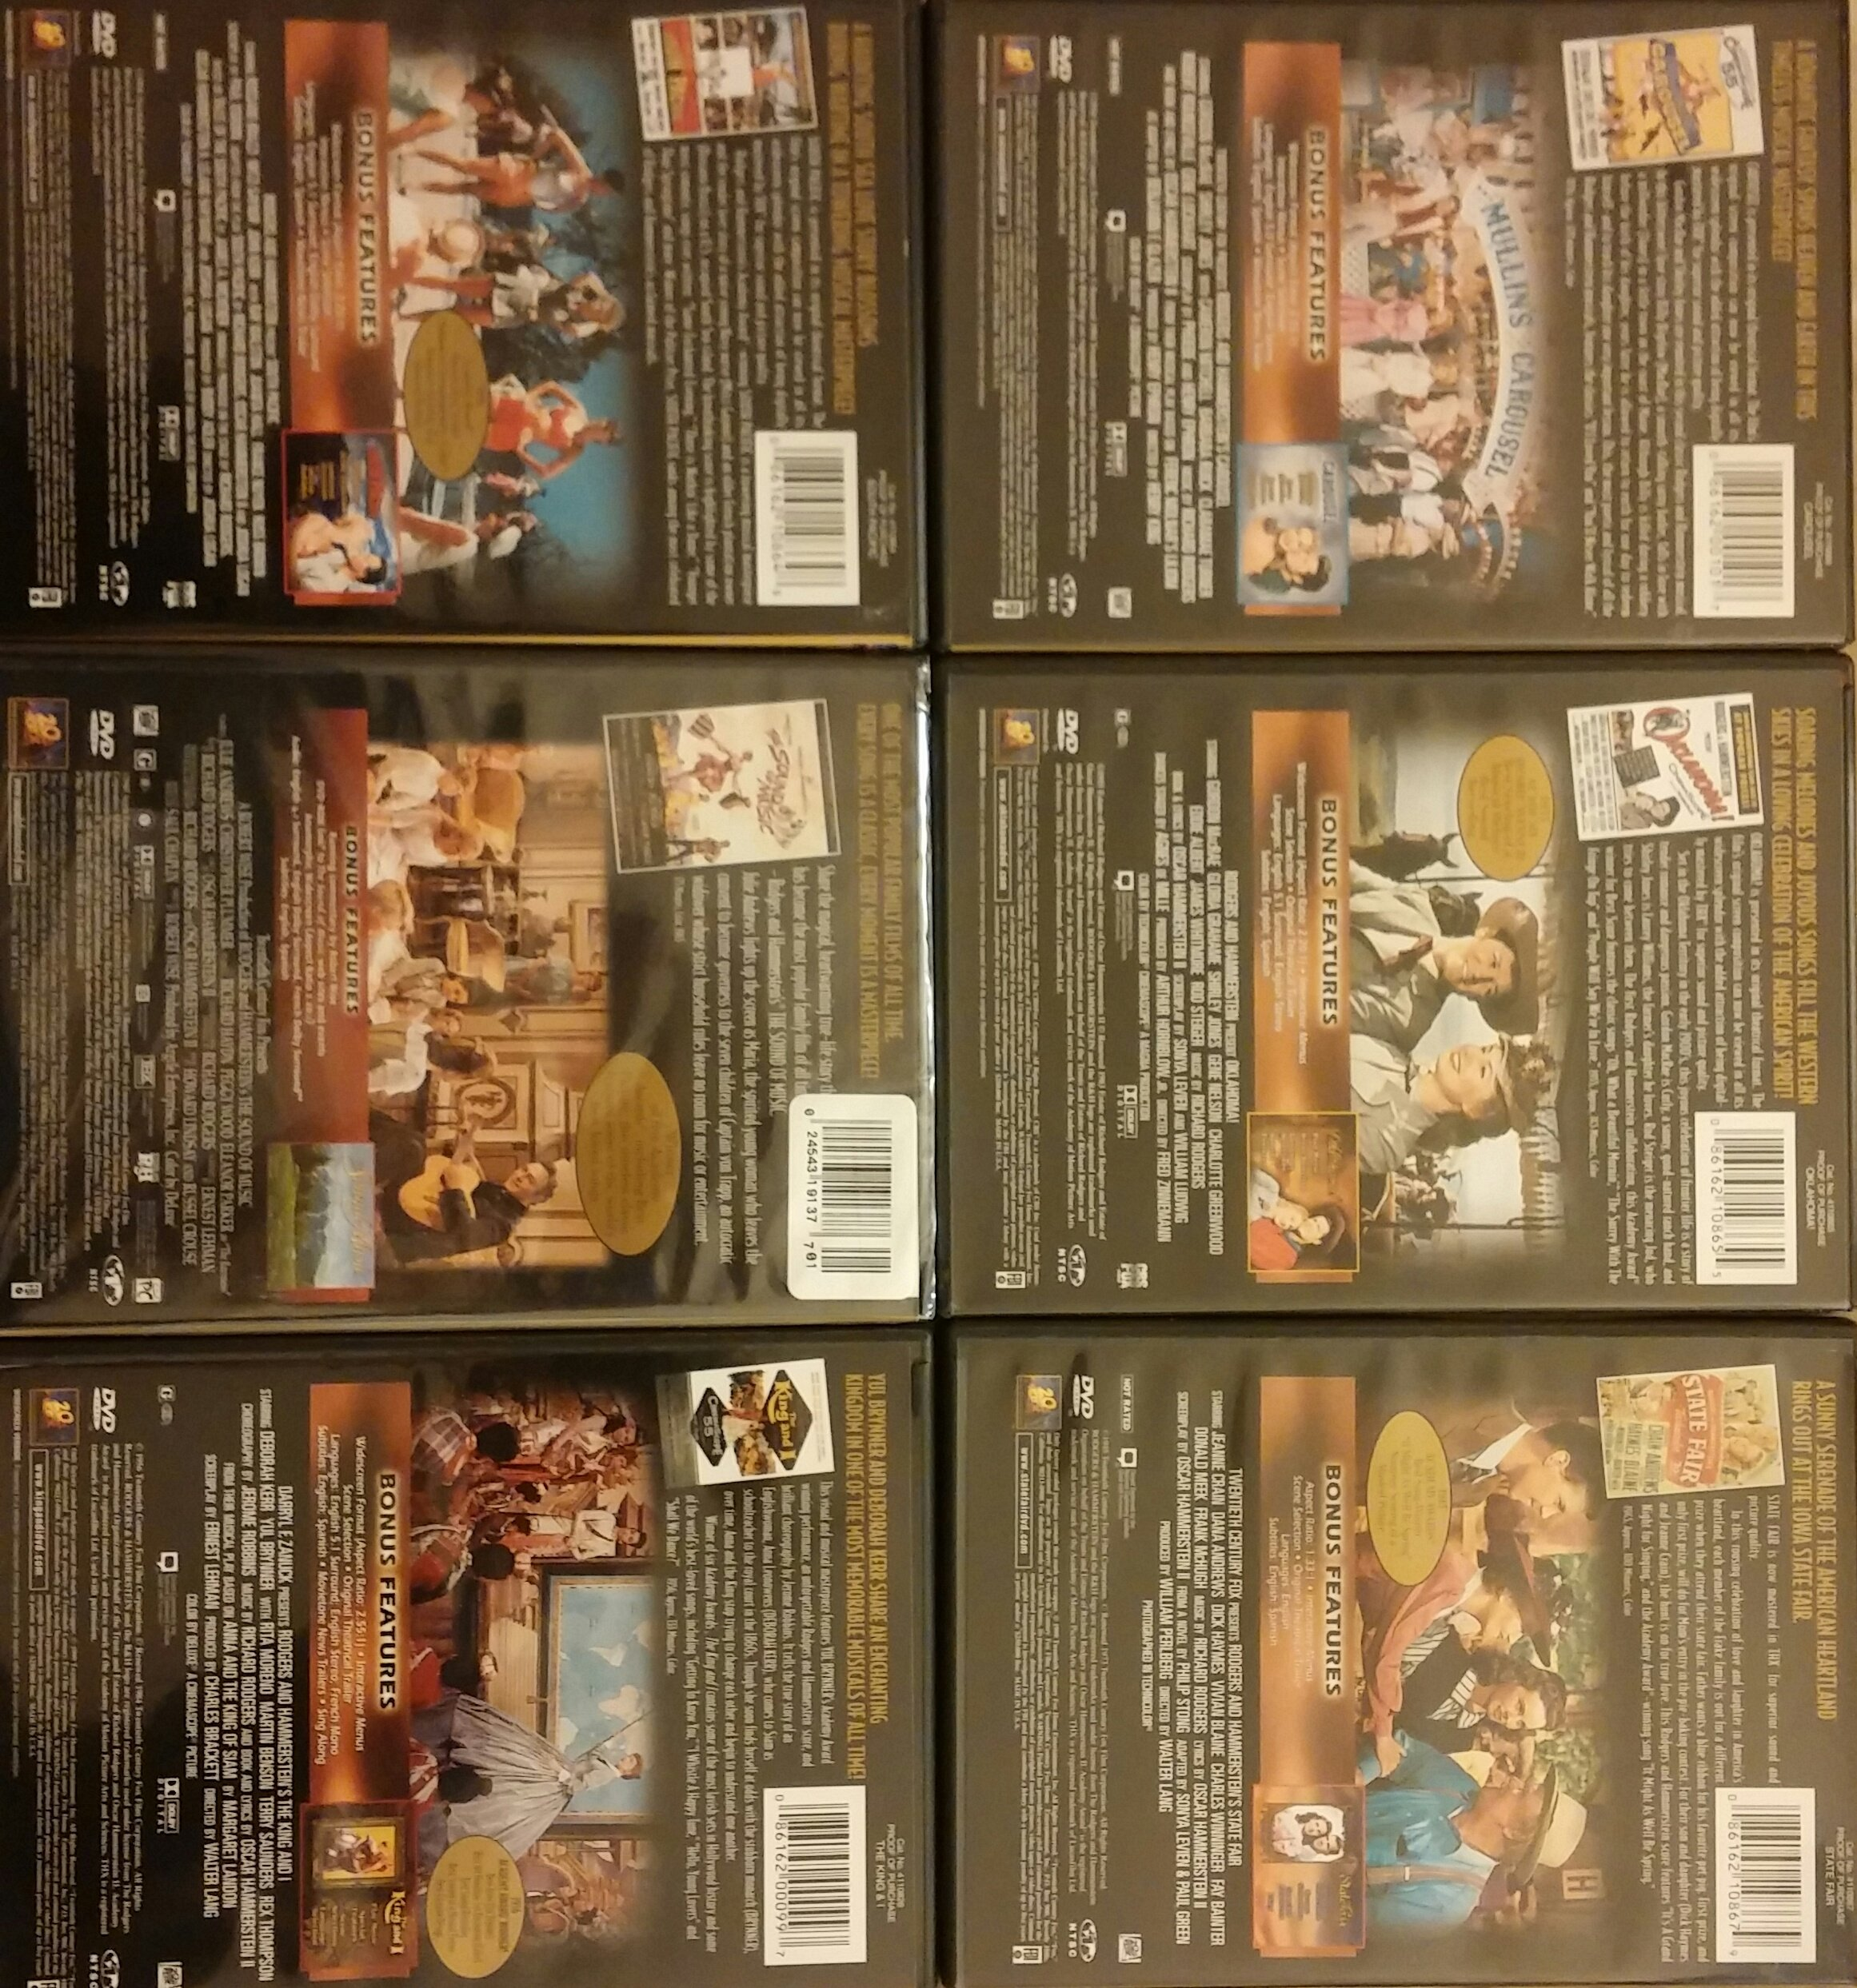 Set of 6 DVD's Rodgers And Hammerstein's Six Greatest Shows Collection